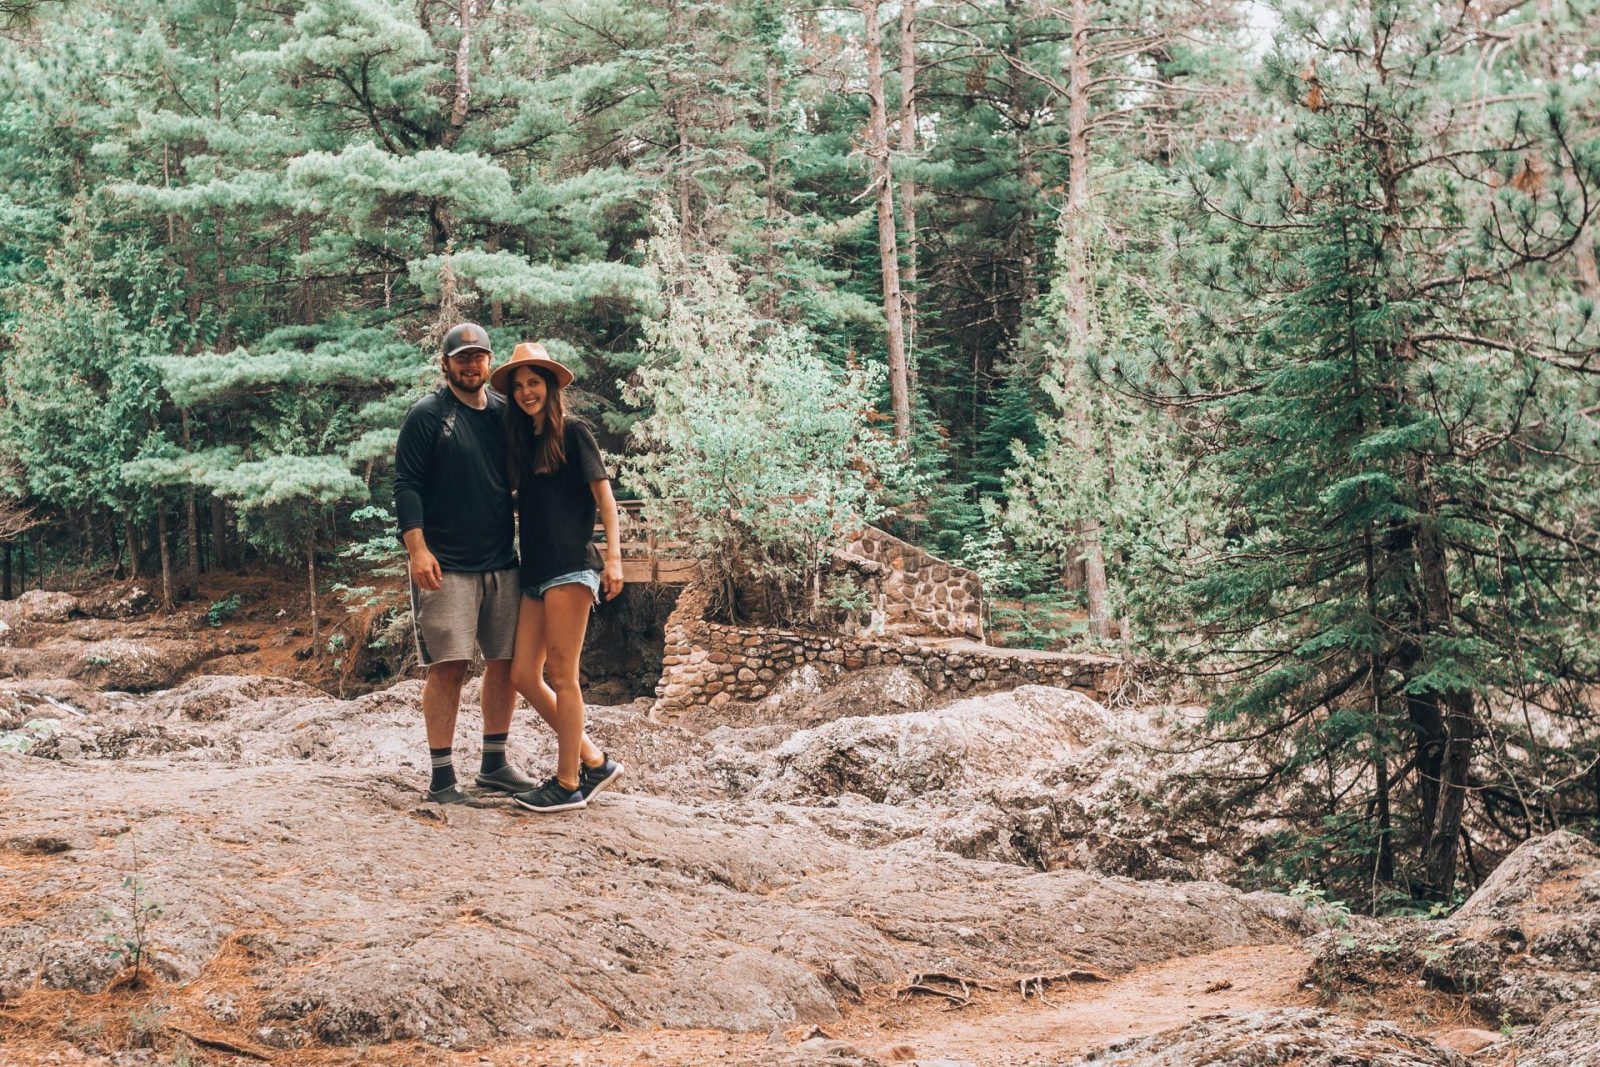 Our engagement story - getting engaged at Amnicon Falls State Park in Wisconsin.